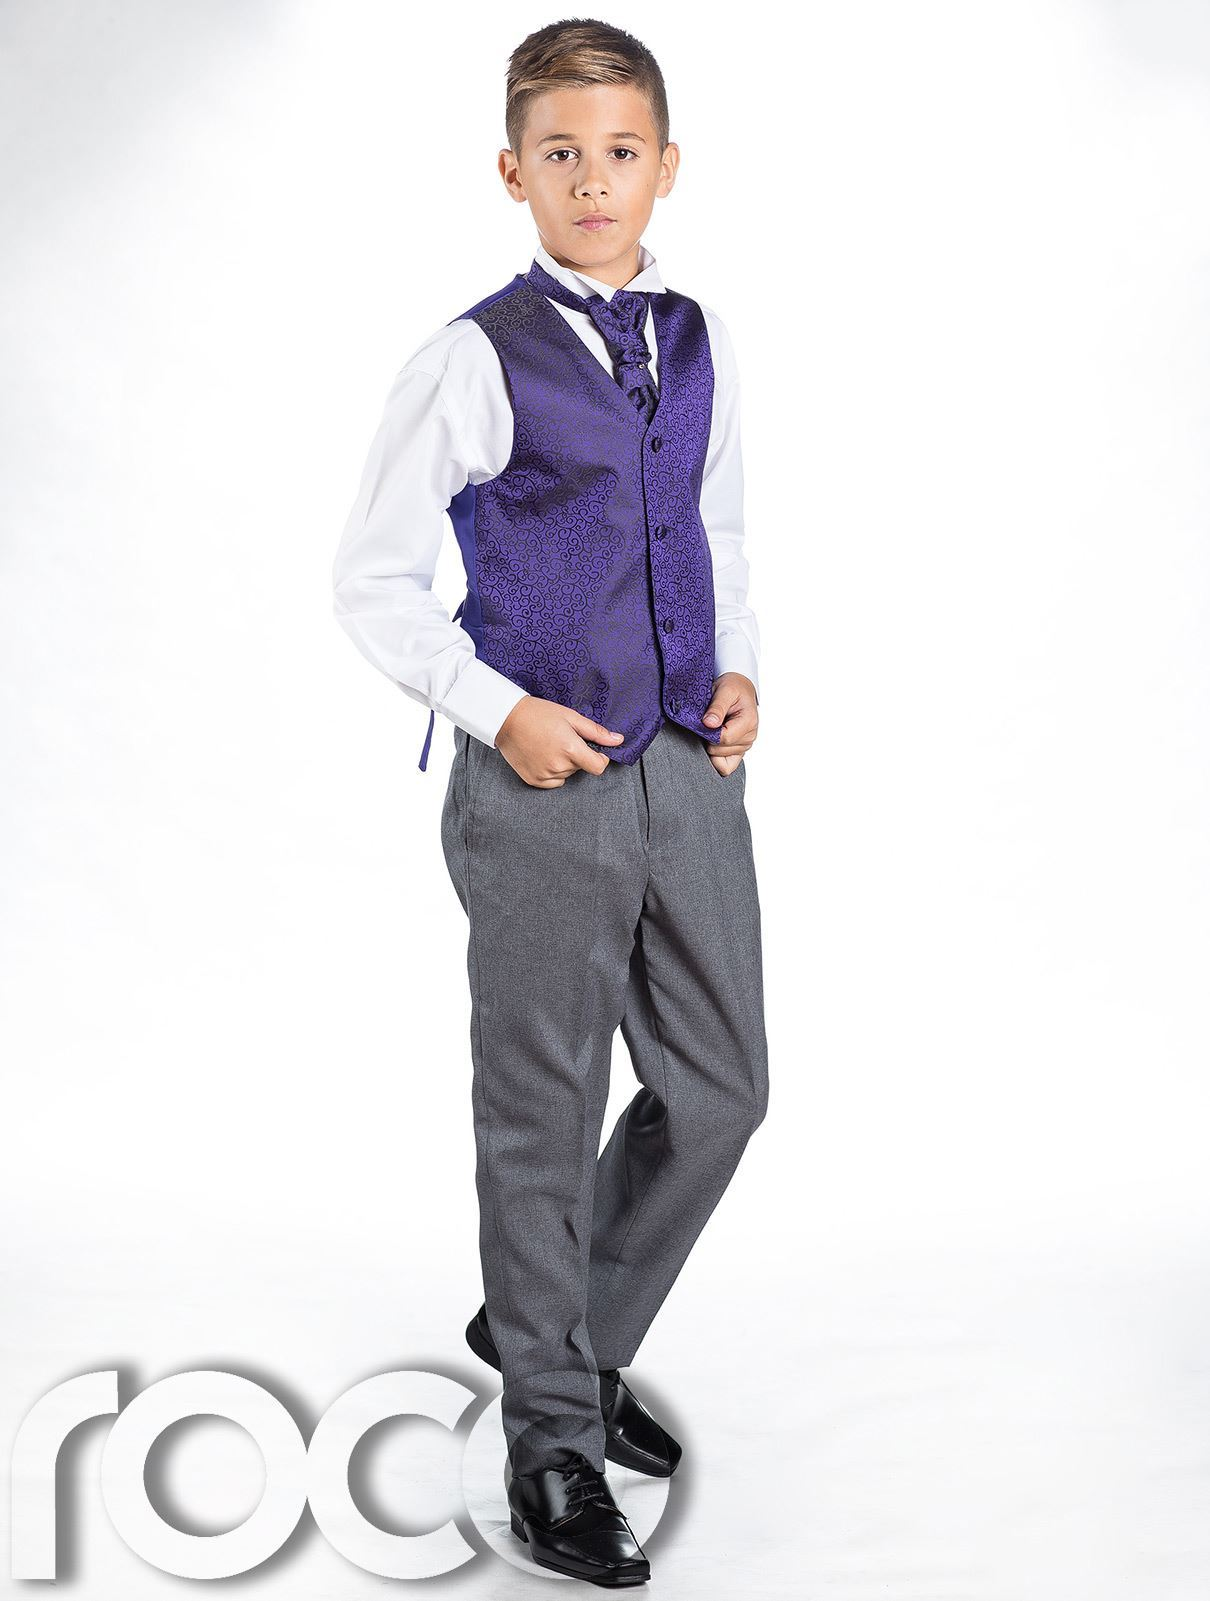 Get the little ones ready for the special occasion with our super smart collection of page boy outfits. Browse sharp suits, formal shoes and accessories to guarantee he looks stylish and sophisticated throughout the big day.